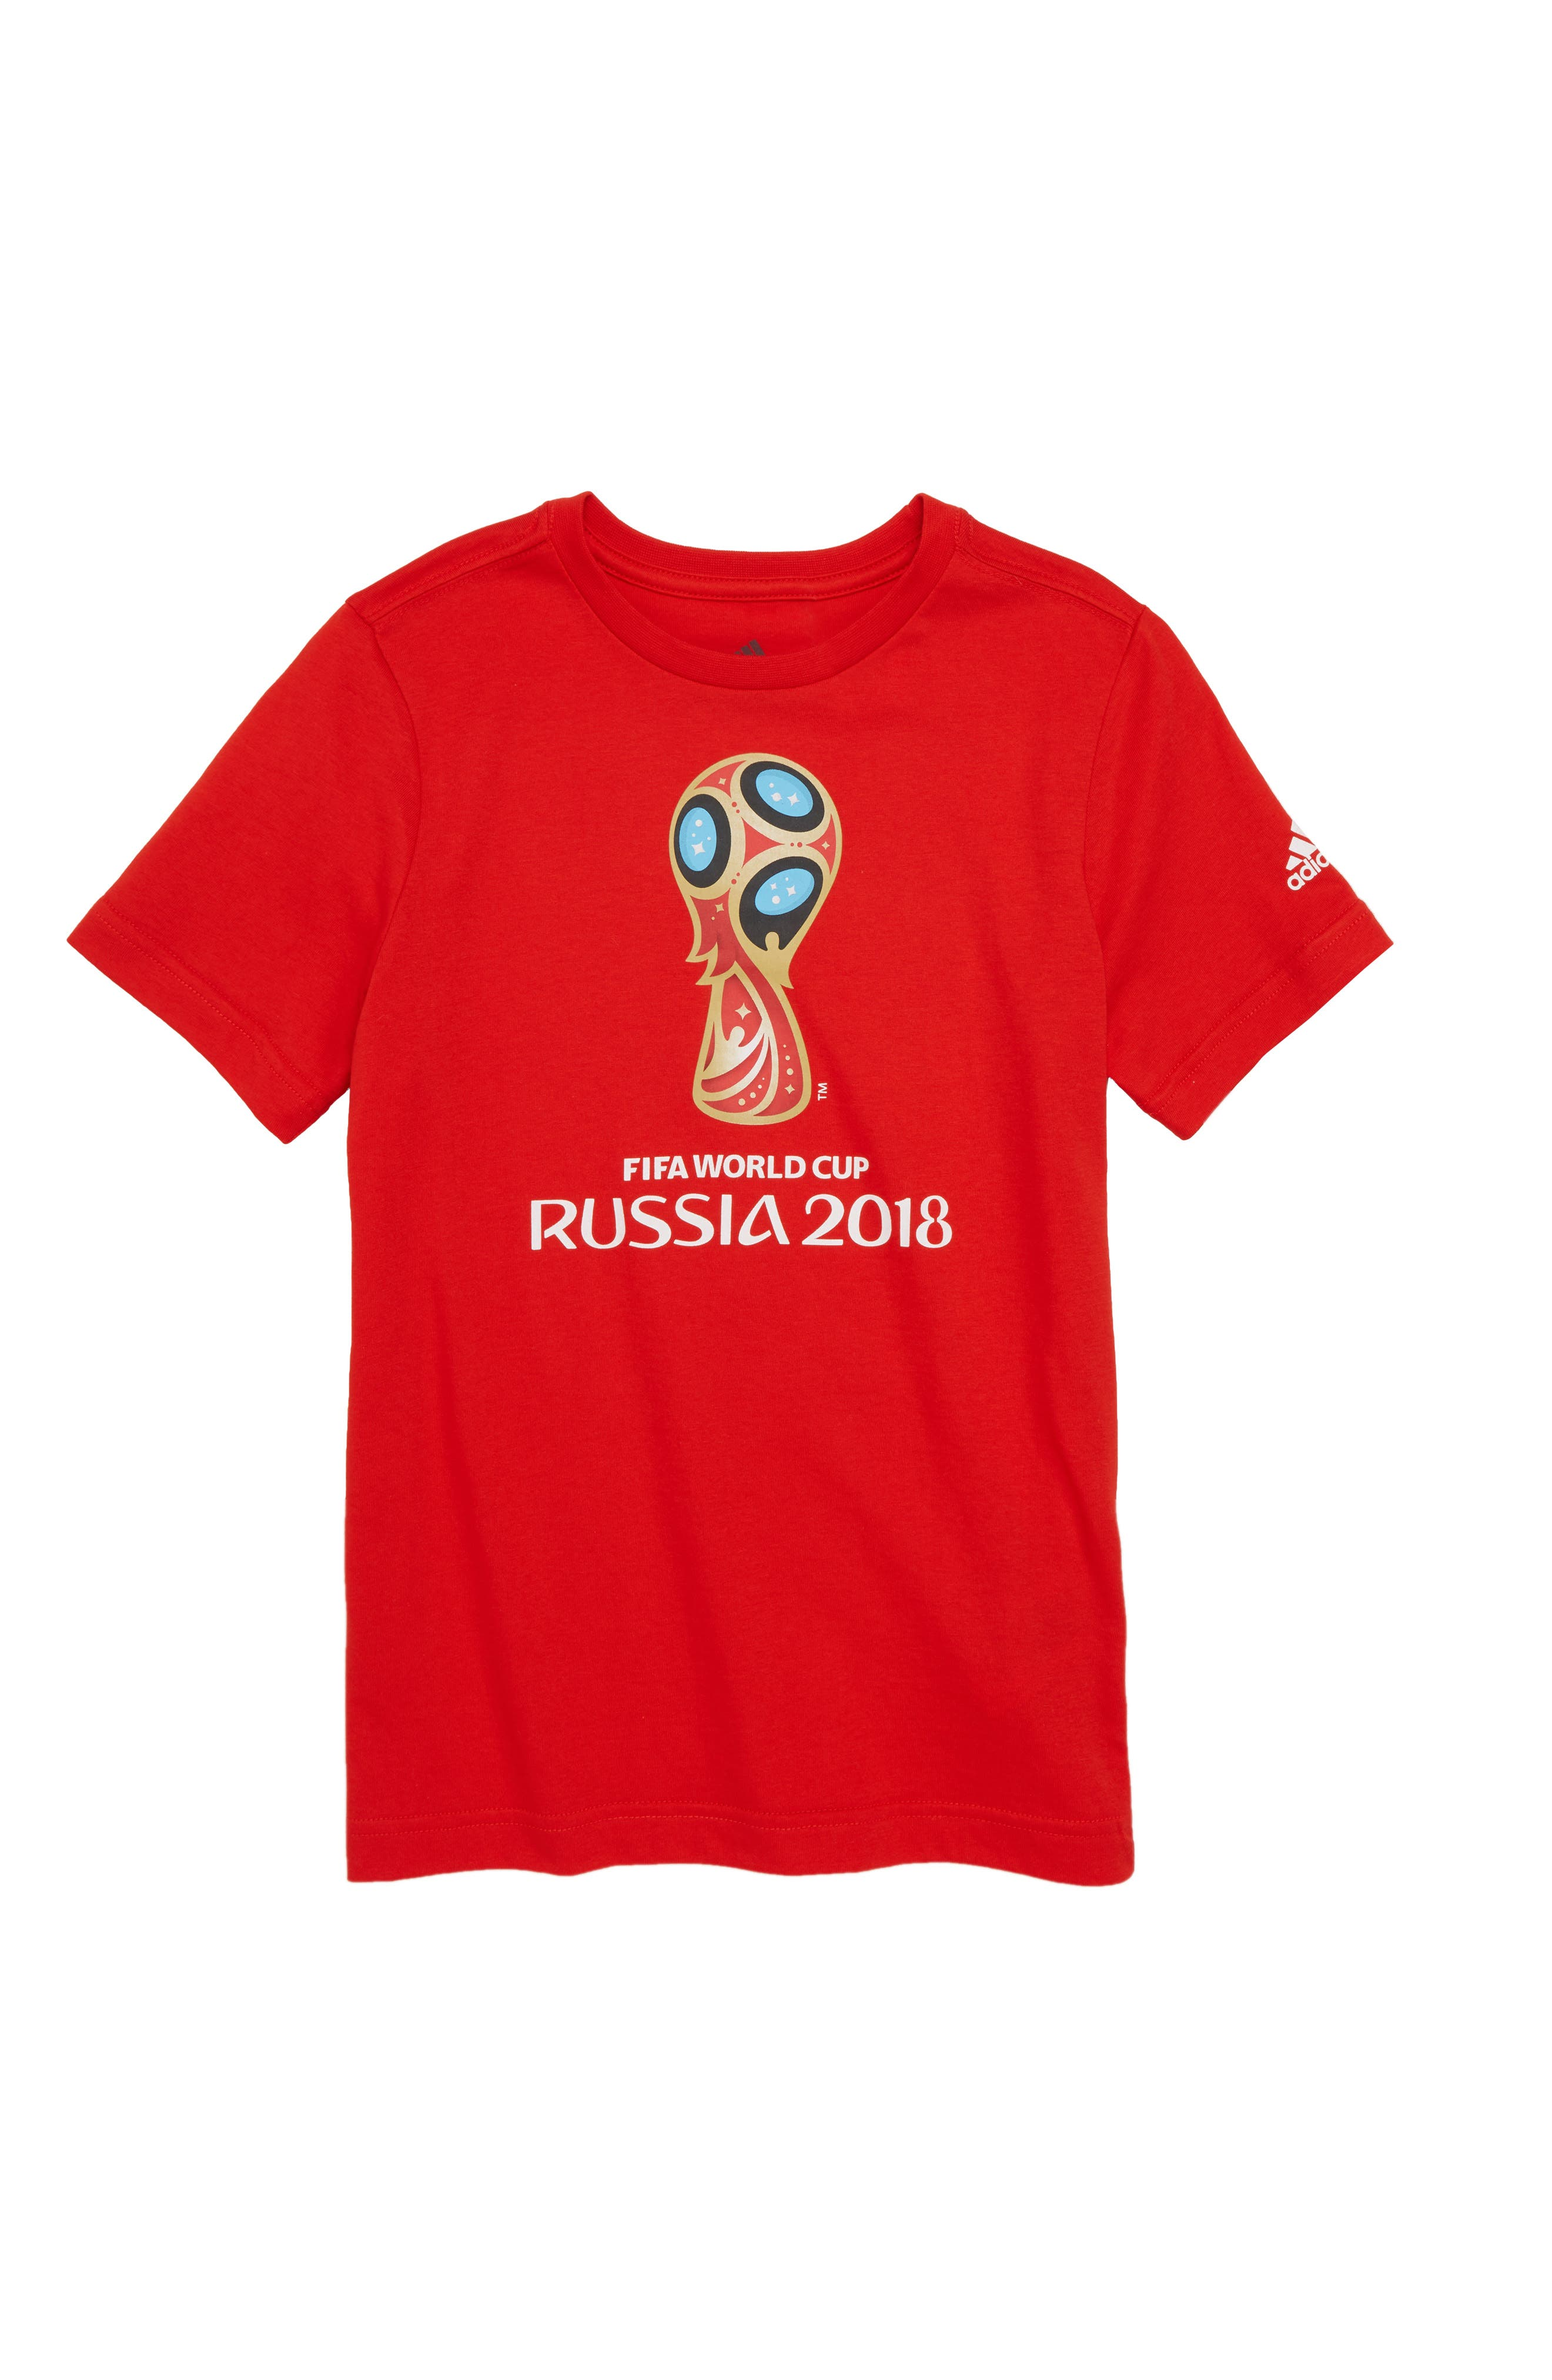 2018 FIFA World Cup Russia Soccer T-Shirt,                             Main thumbnail 1, color,